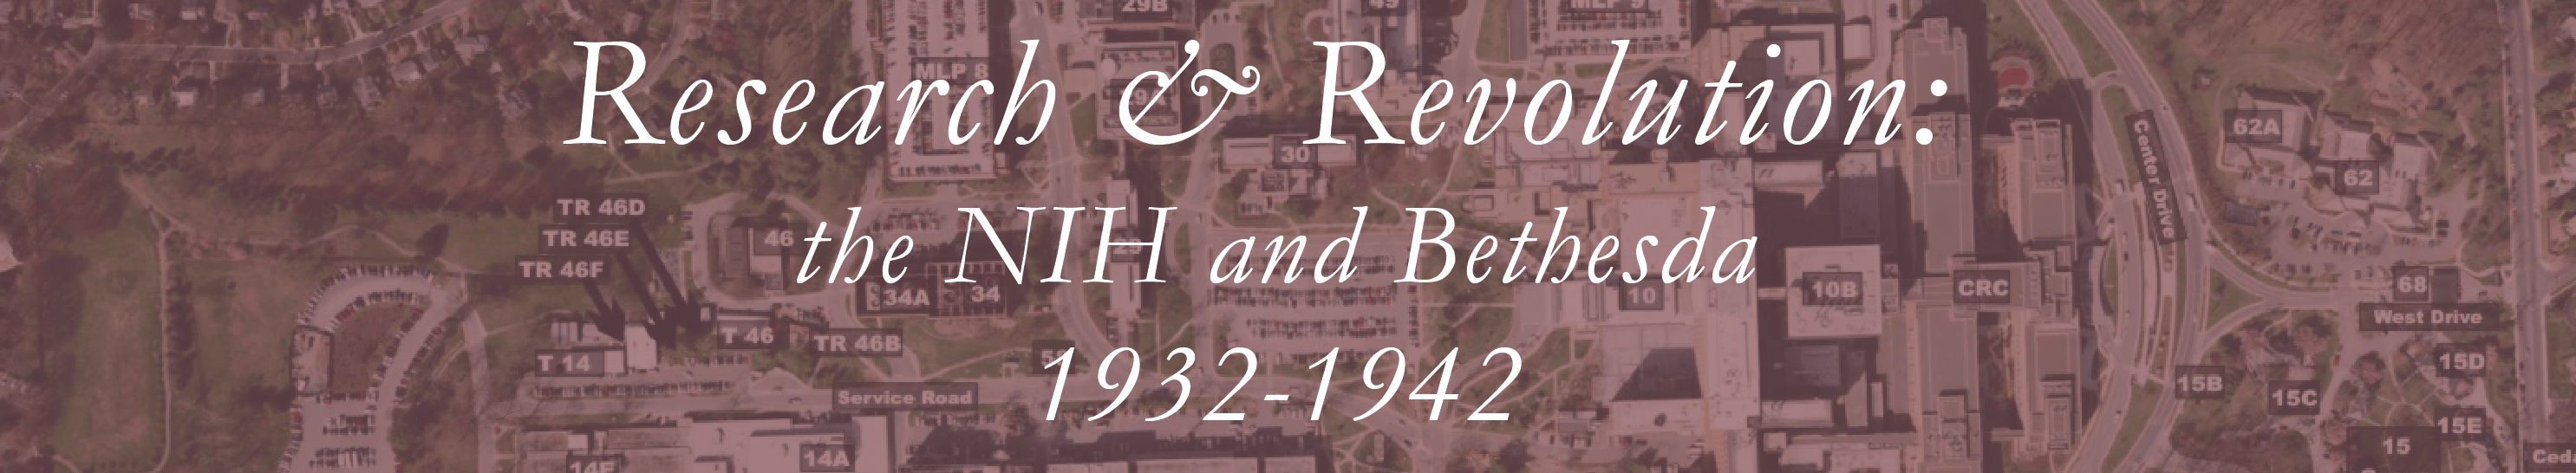 Research and Revolution: the NIH and Bethesda